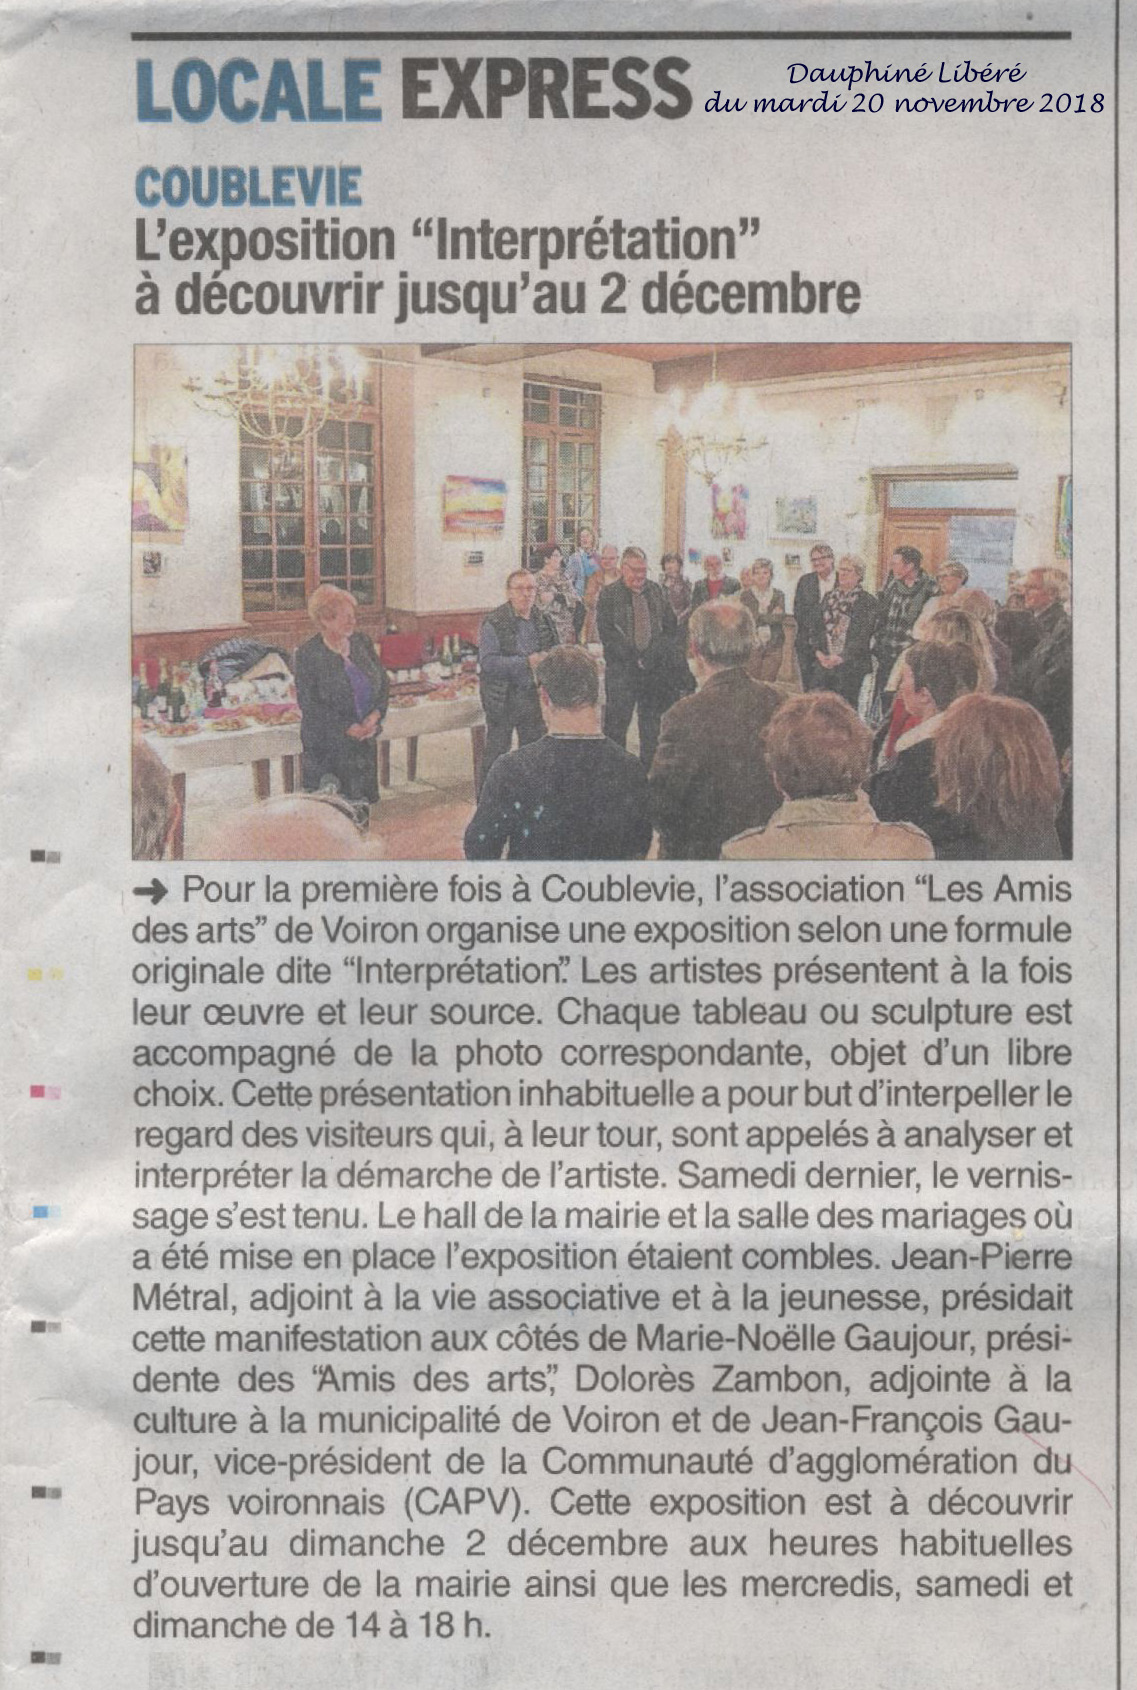 Article_DL_expo_Interprétation_20-11-2018